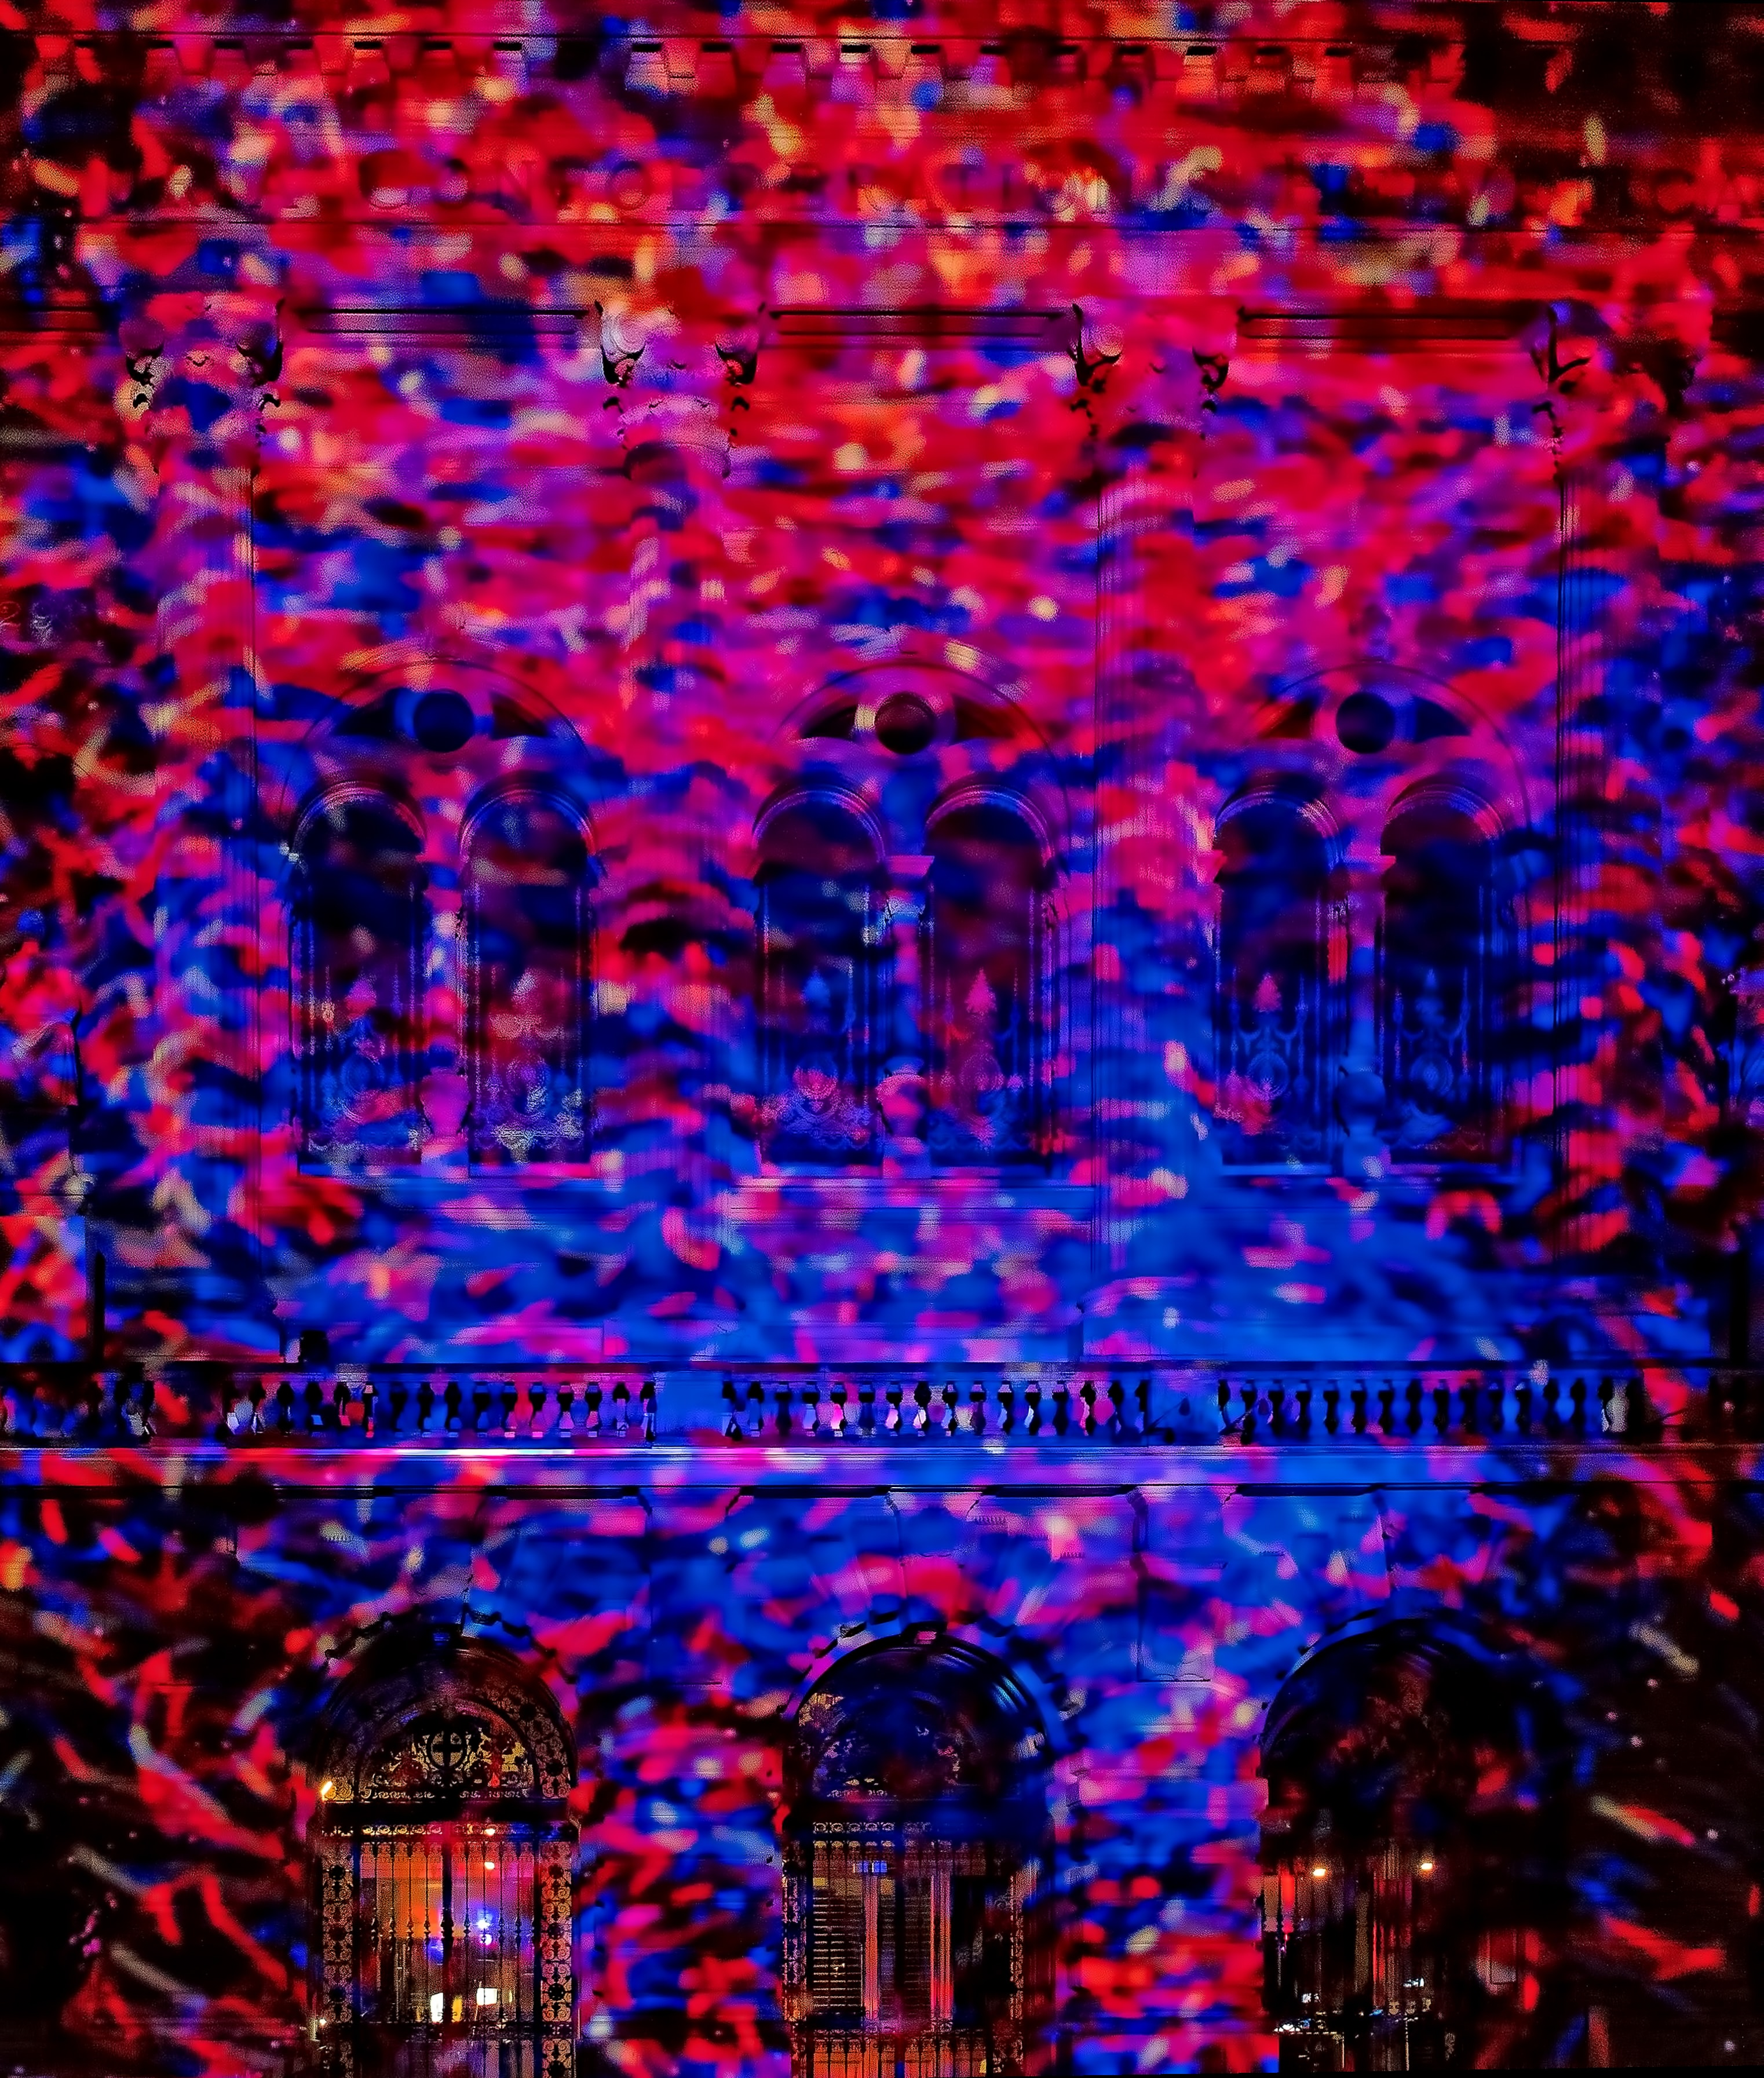 Red and blue spotlights vividly shining onto a building.